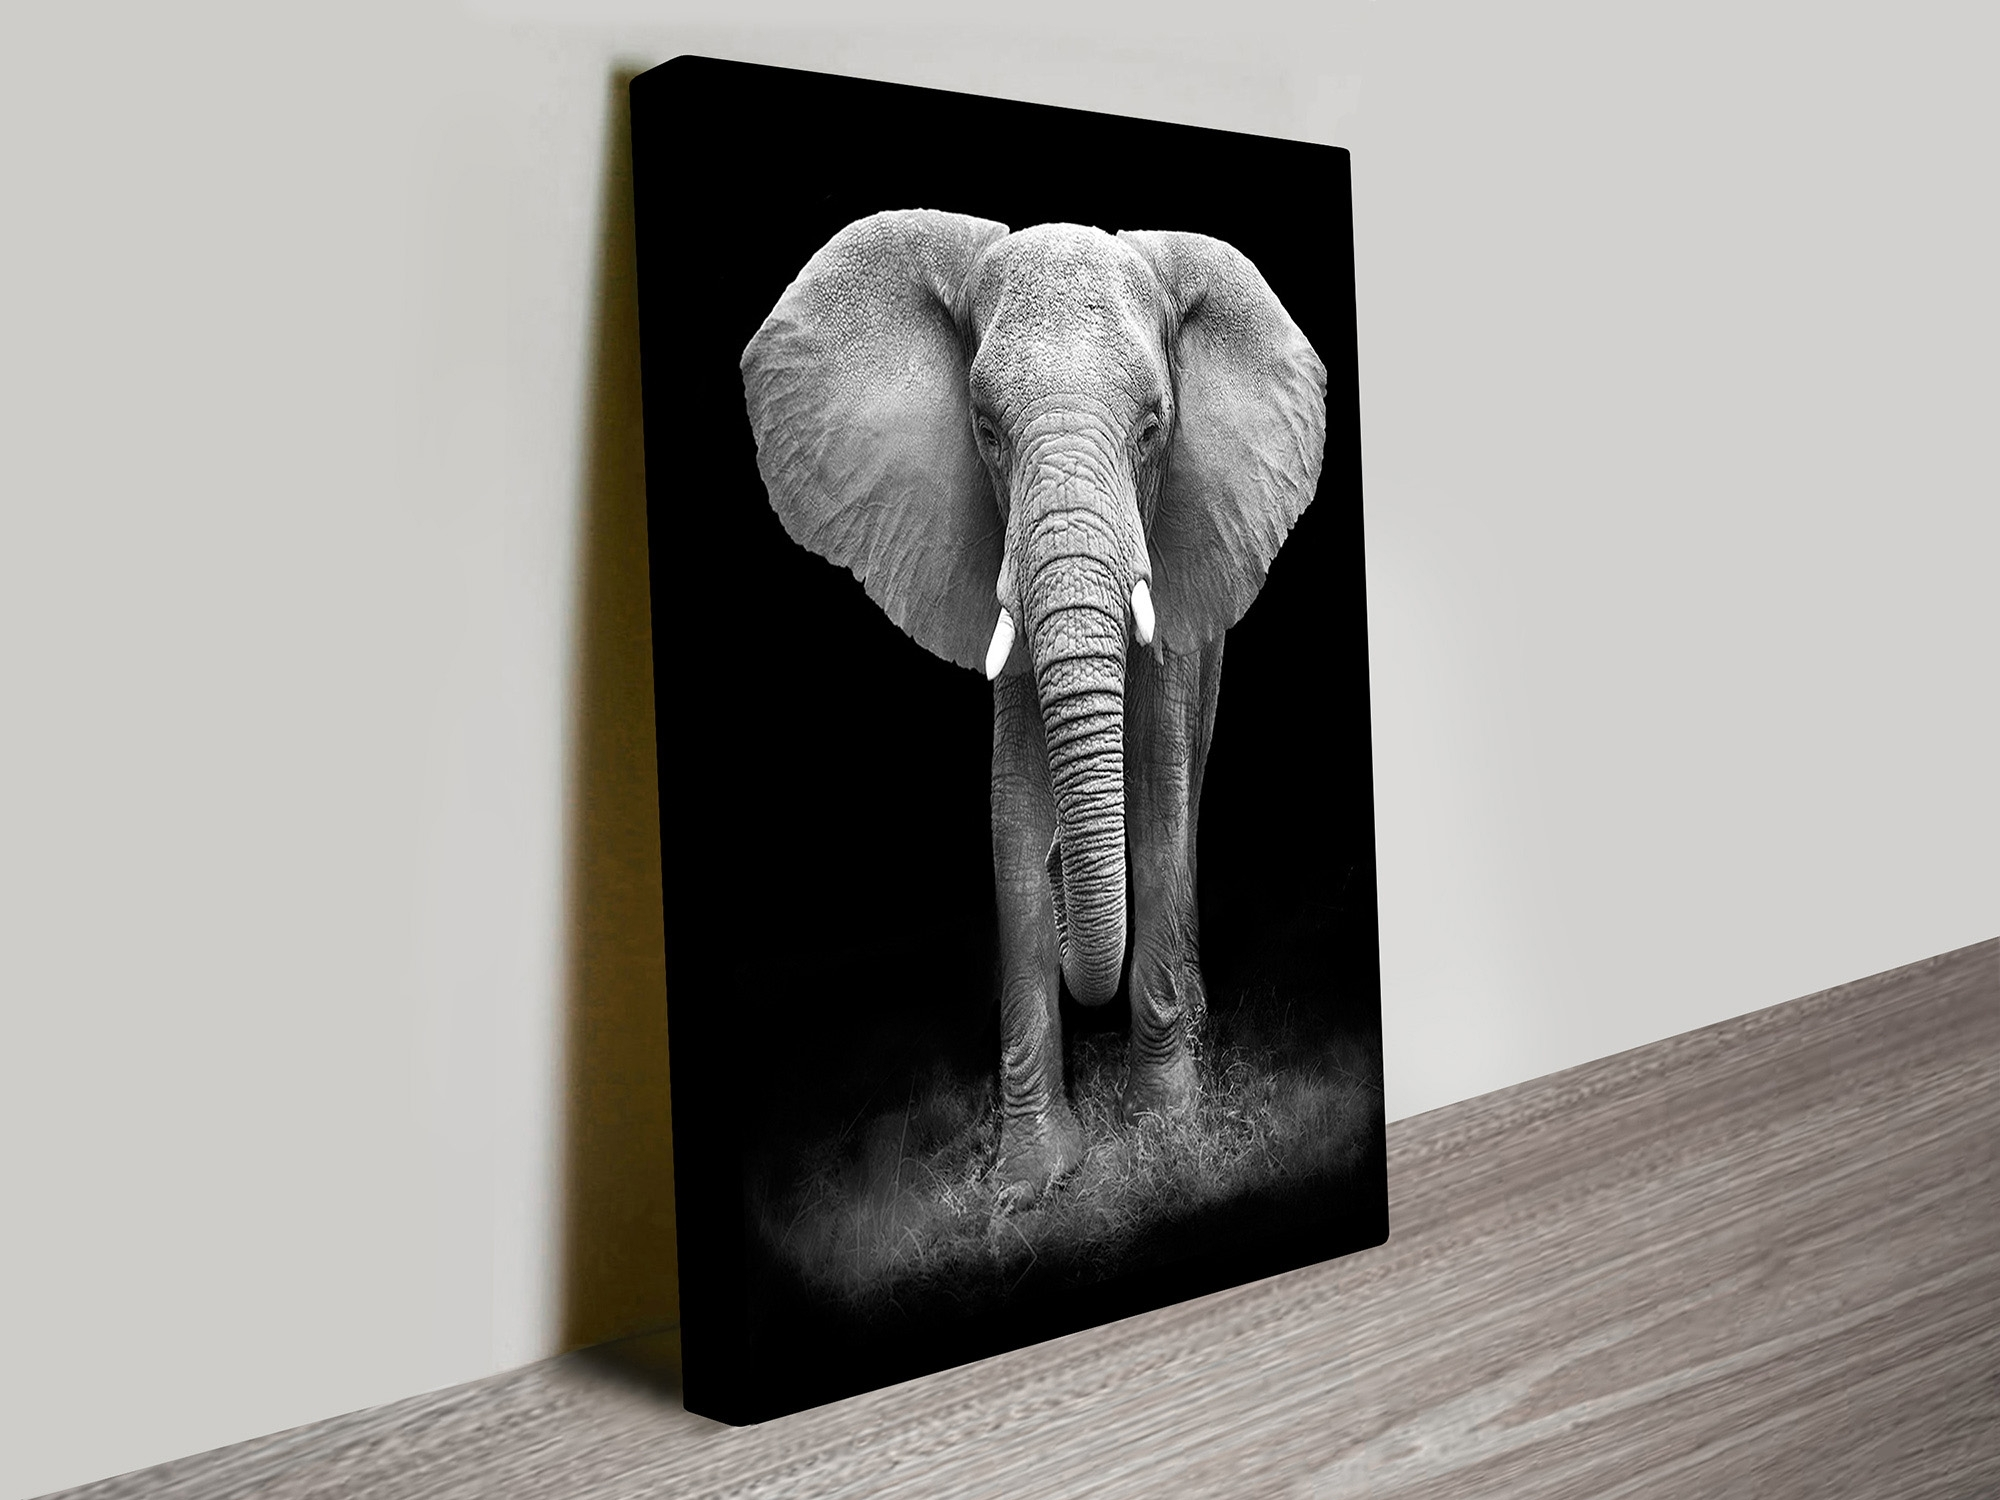 Gentle Giant Elephant Canvas Wall Art – Blue Horizon Prints Within Most Current Elephant Canvas Wall Art (View 14 of 20)